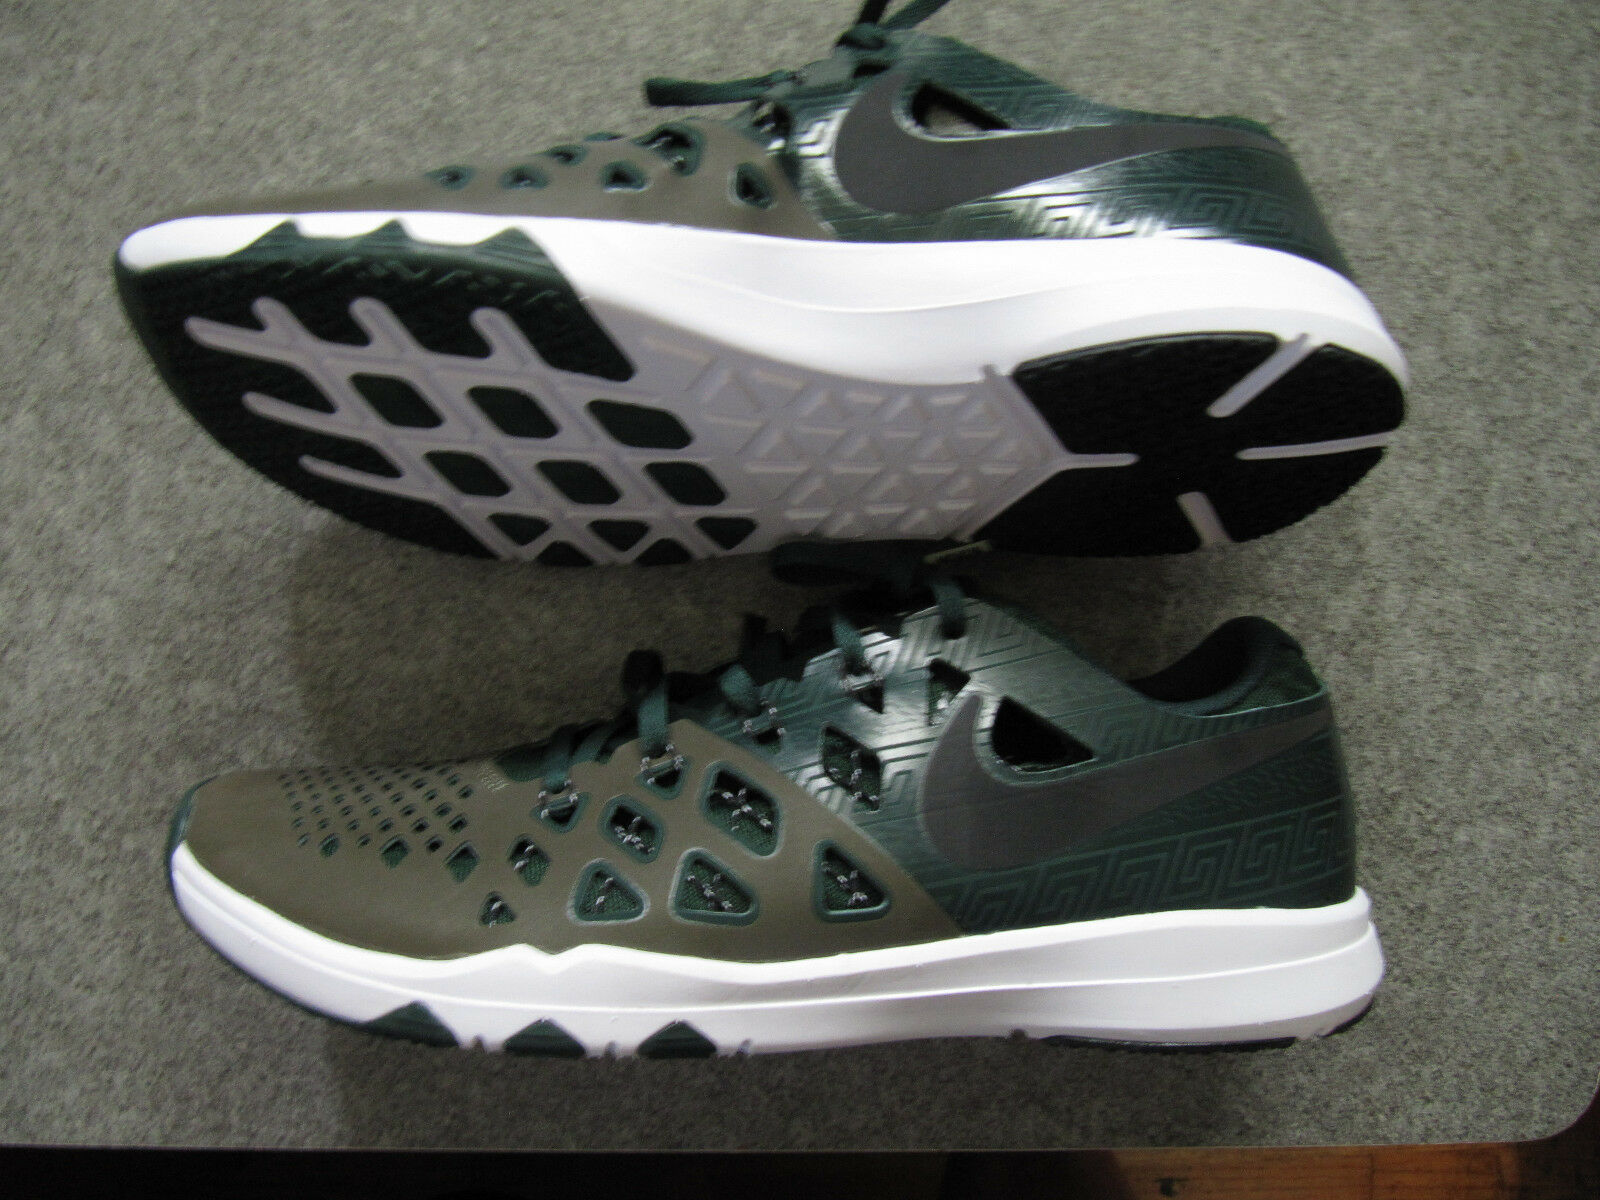 New shoes for men and women, limited time discount Nike Train Speed Amp 4 Michigan State Spartans  844102 309 MSU Comfortable